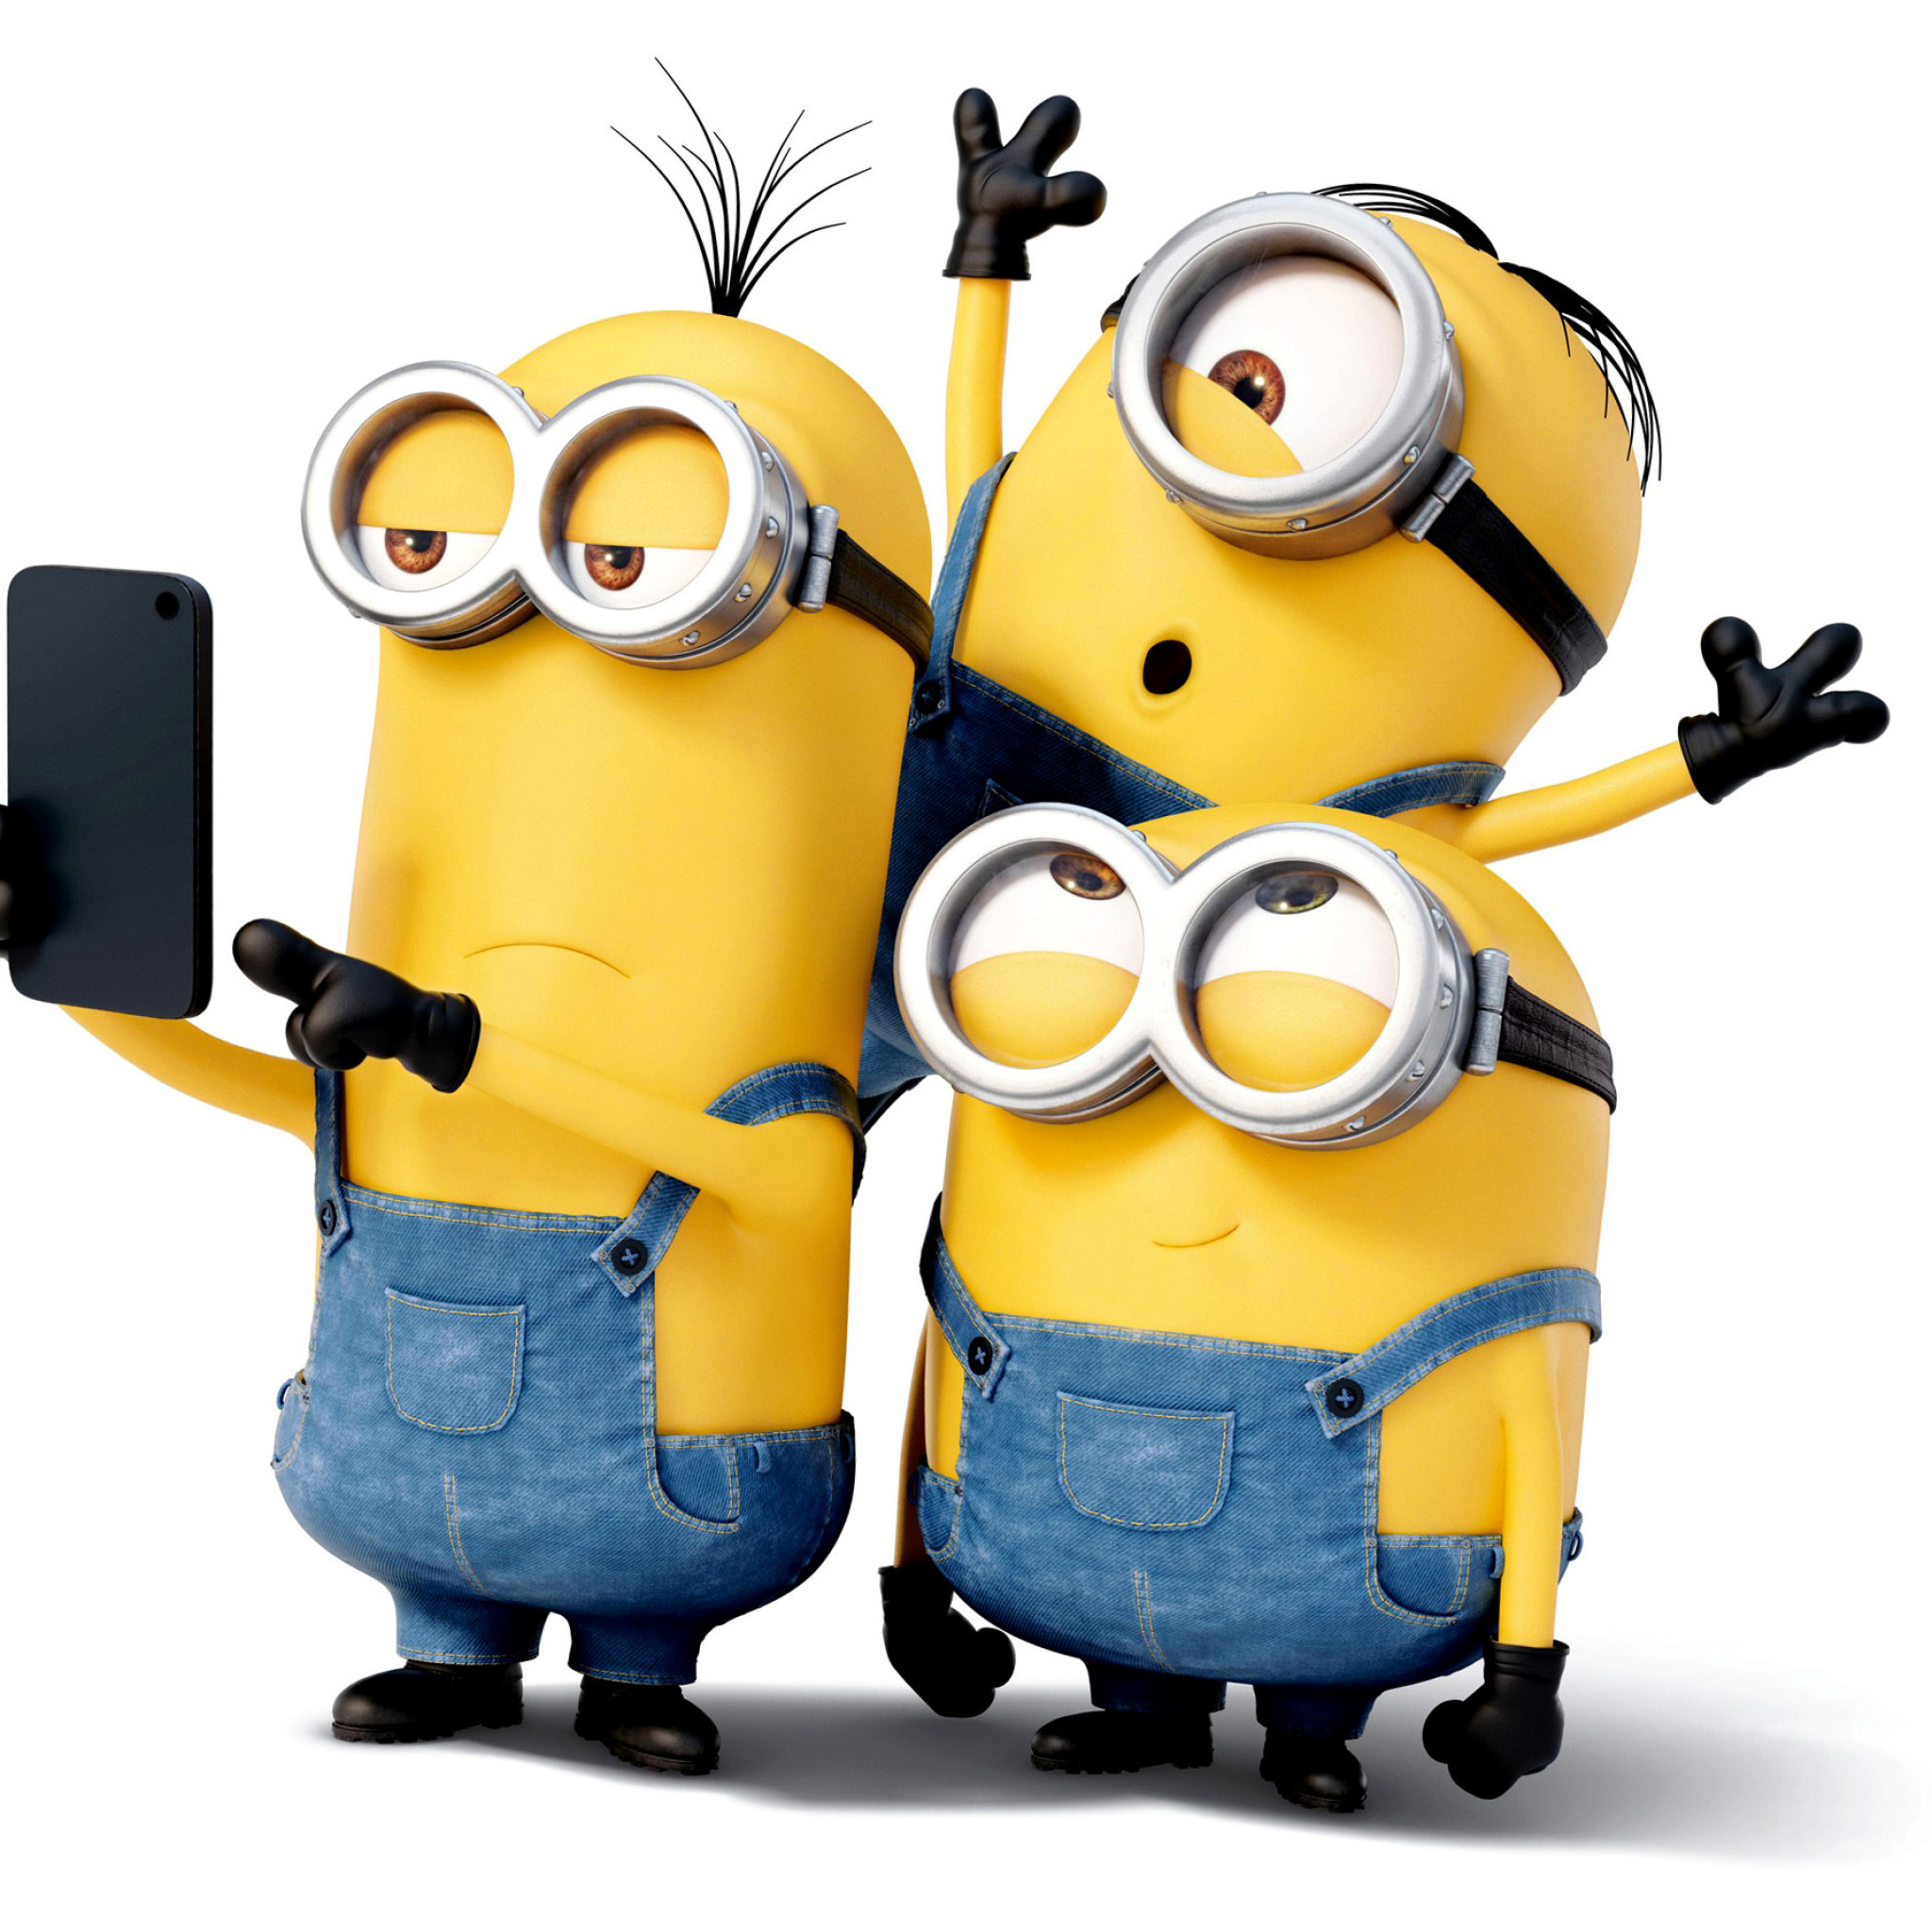 fond d 39 cran ipad minion selfies 2048x2048 gratuit. Black Bedroom Furniture Sets. Home Design Ideas